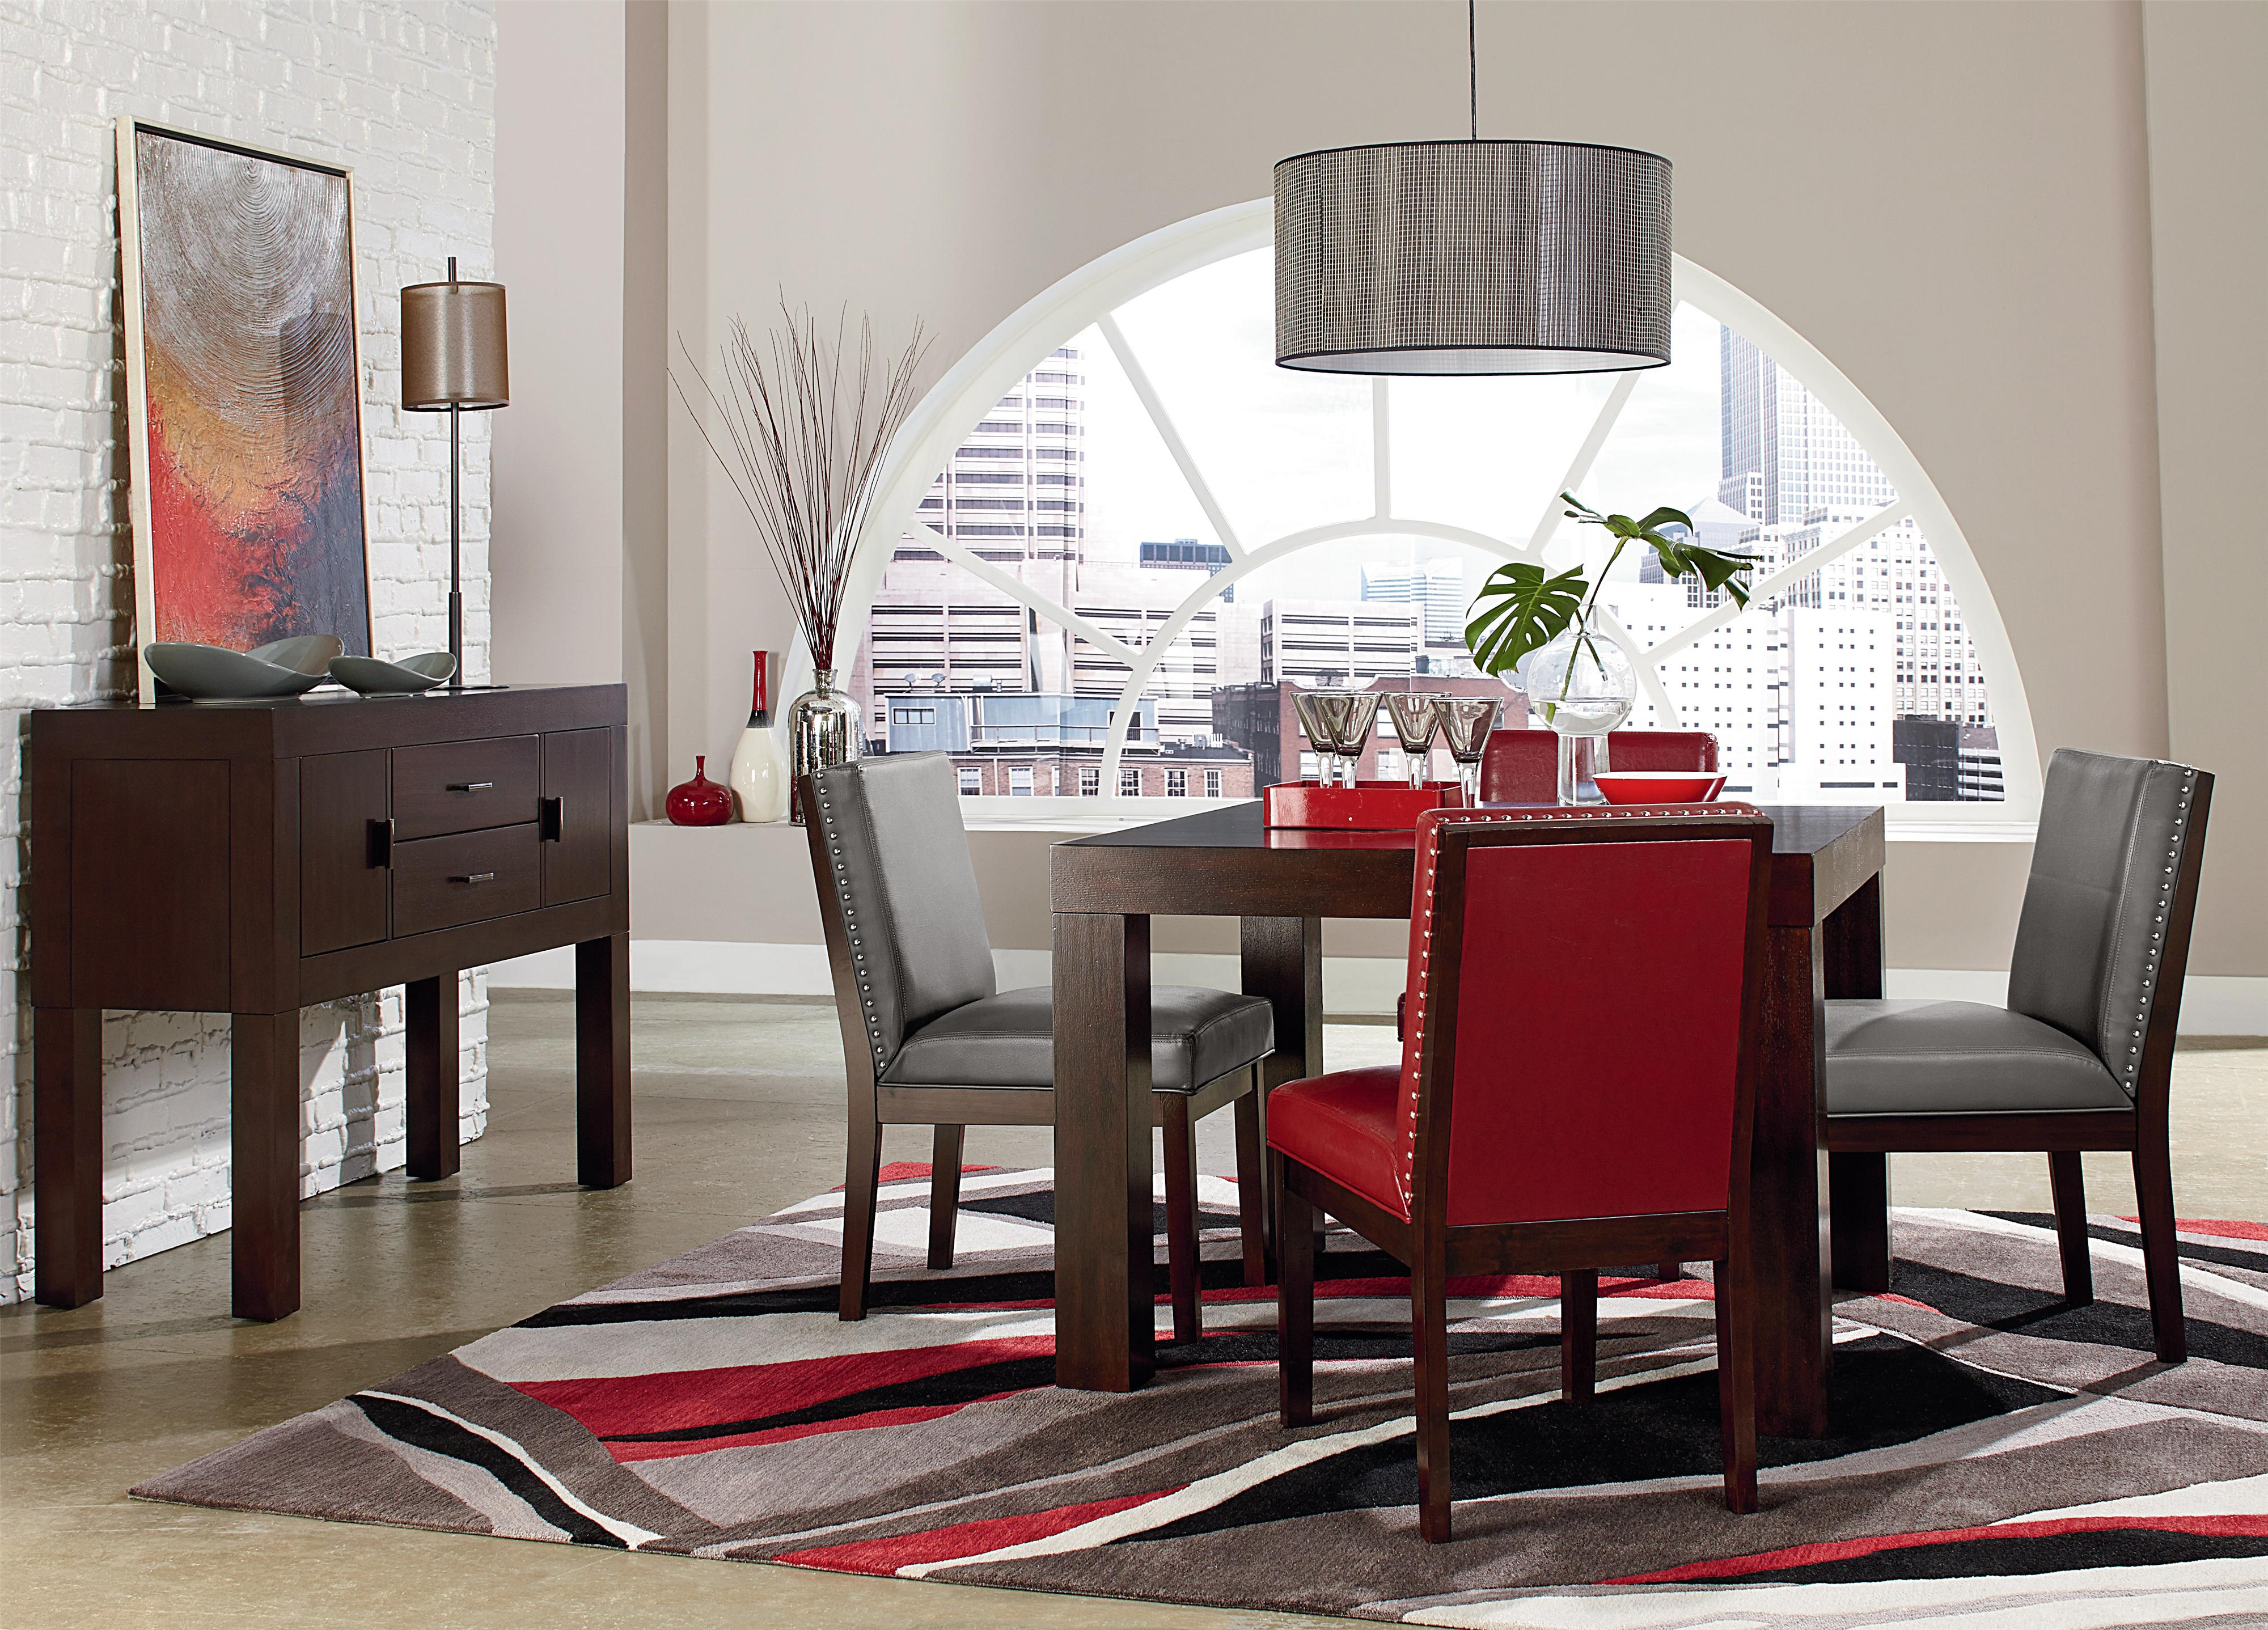 Standard Furniture Couture Elegance Dining Room Group - Item Number: 10560 Dining Room Group 4